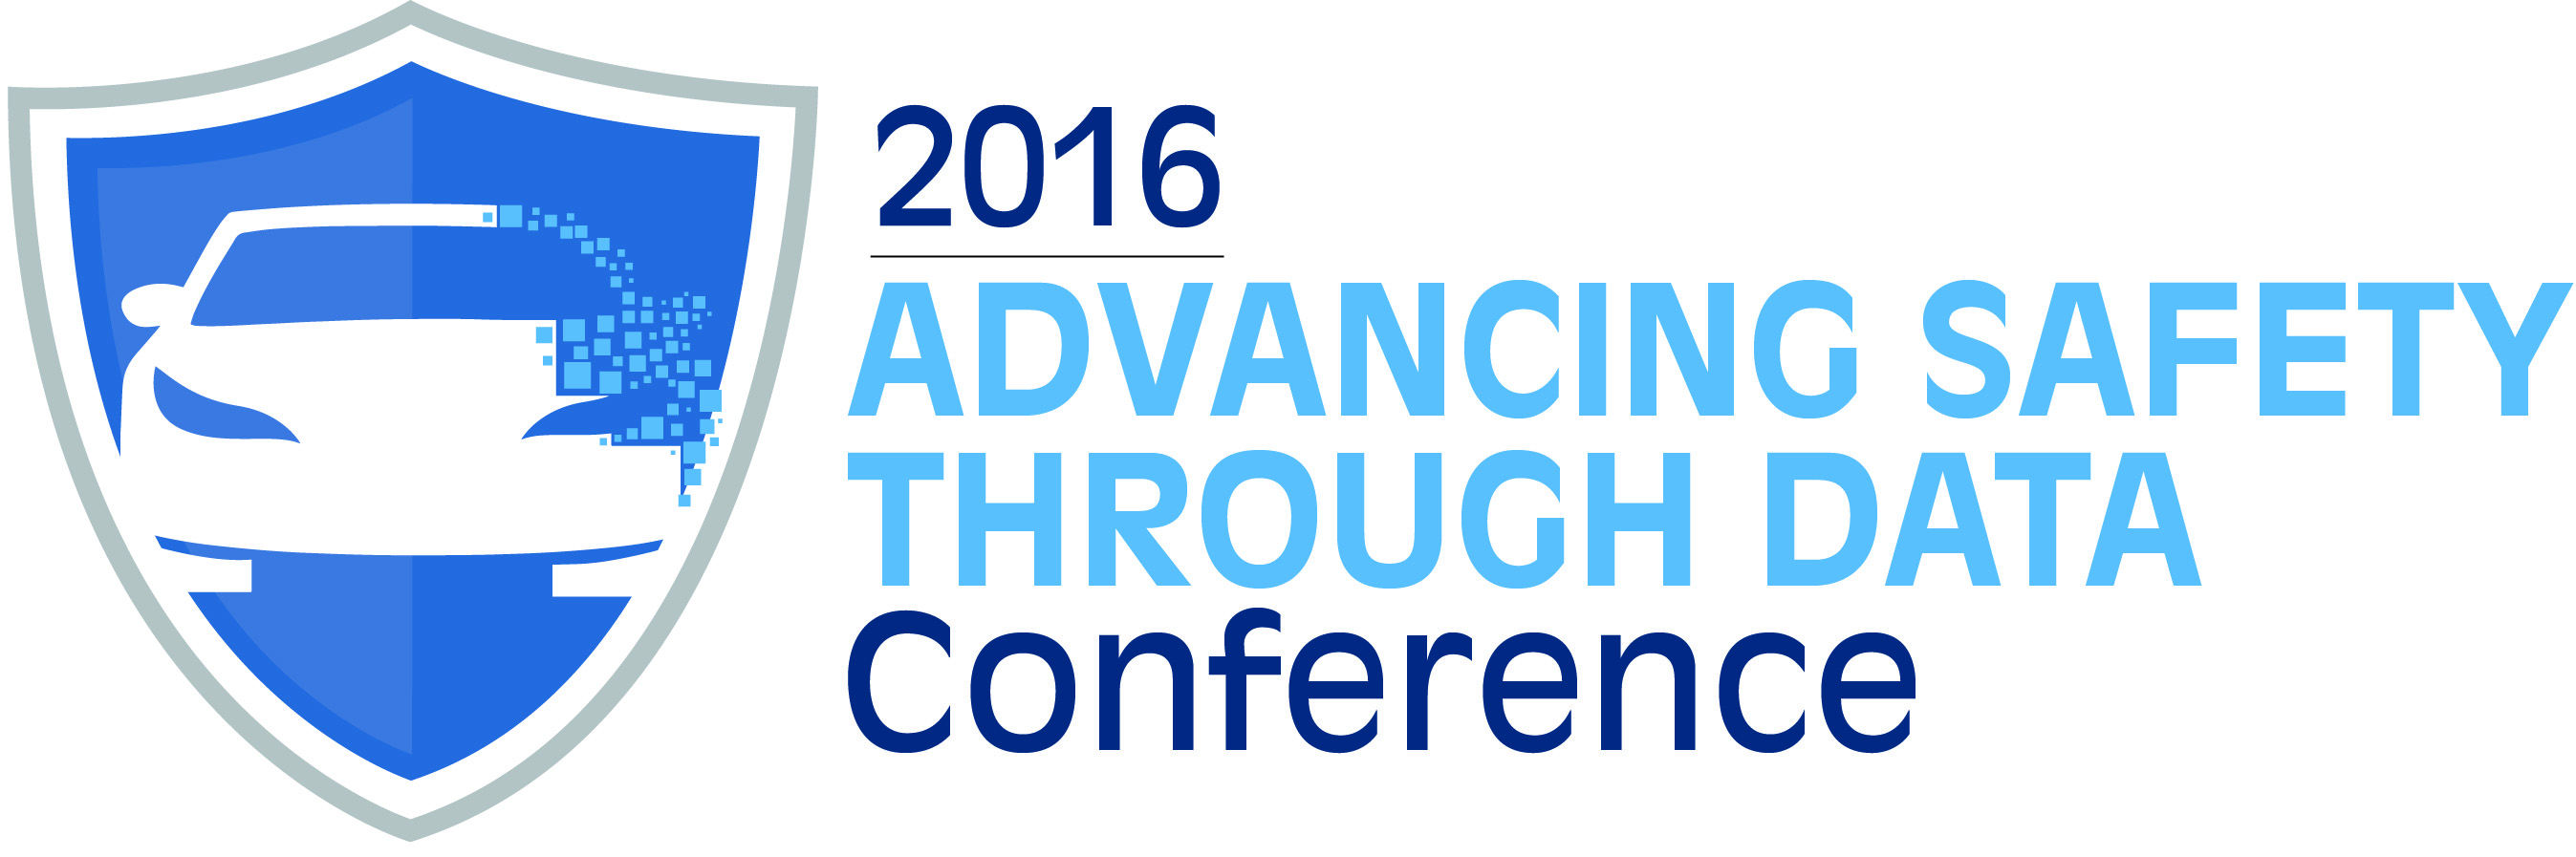 Advancing Safety Through Data Conference Logo v2